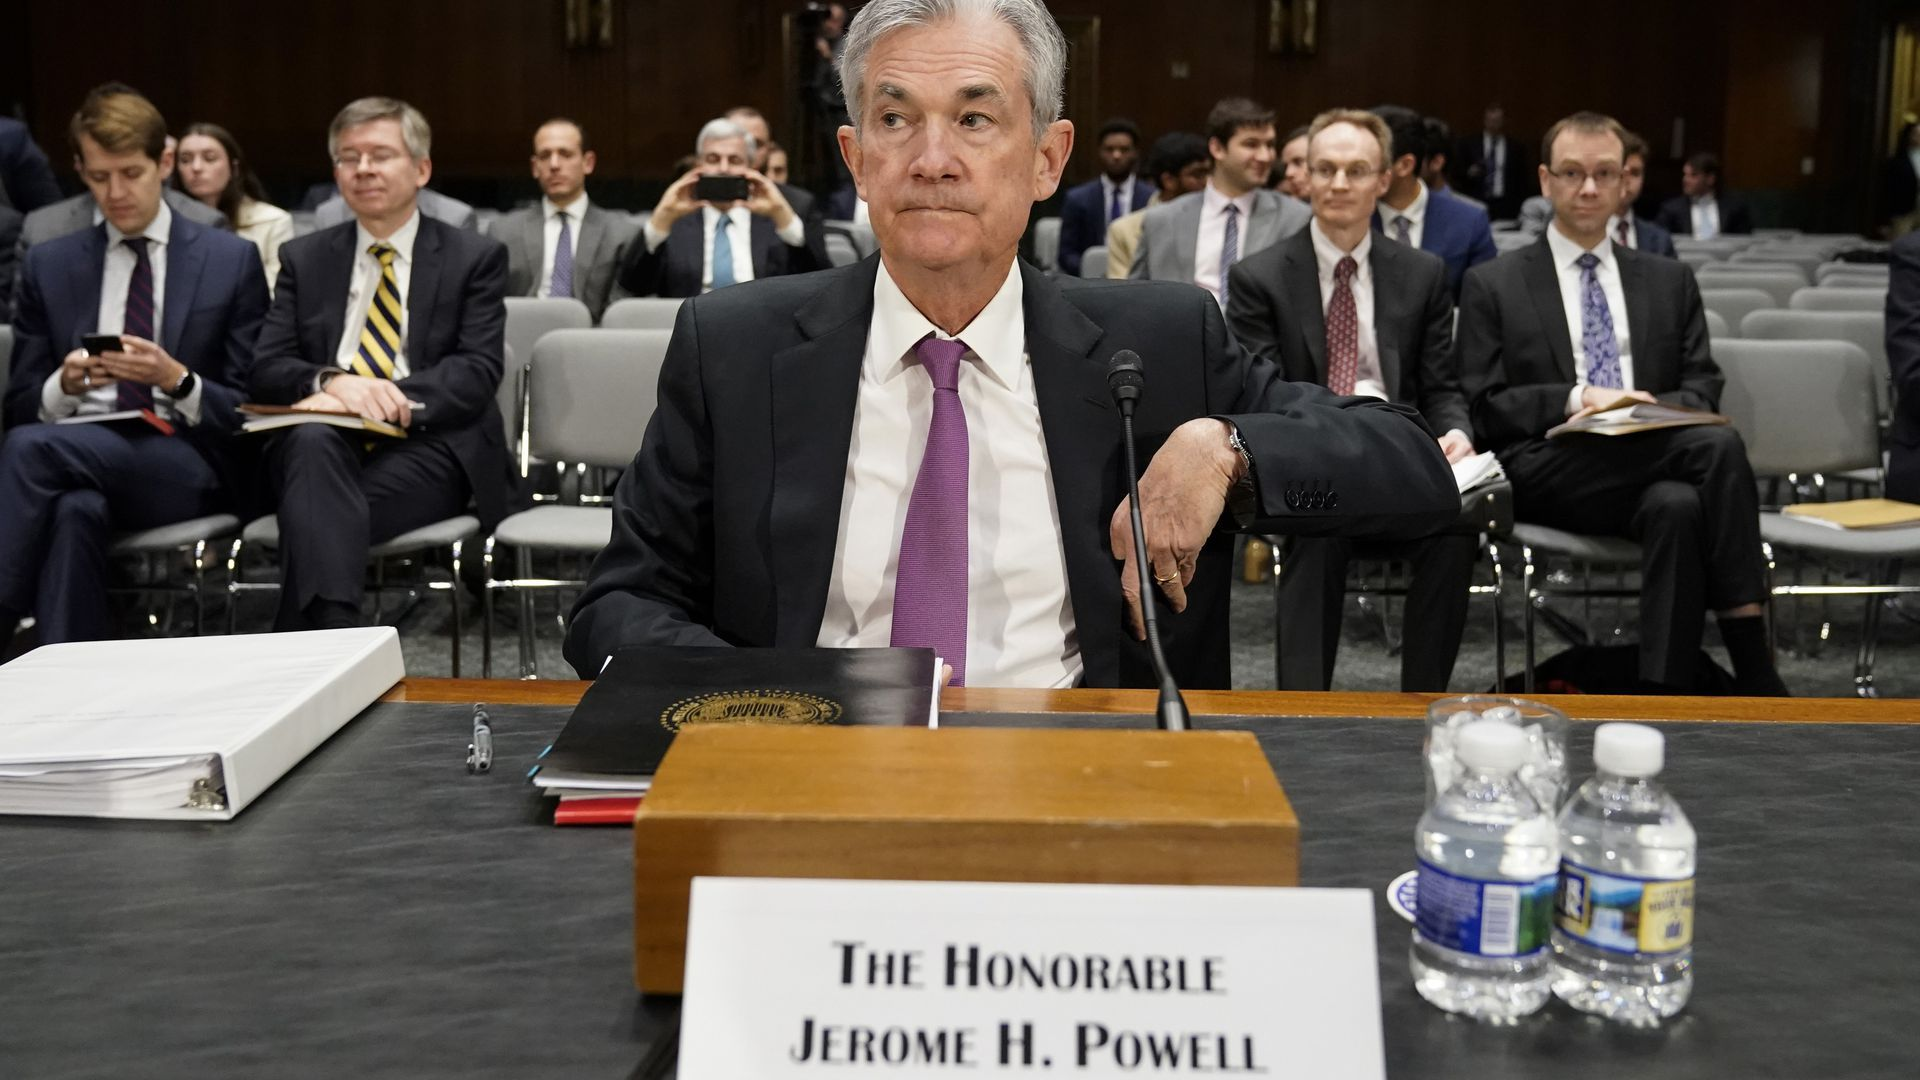 Jerome Powell in front of congress